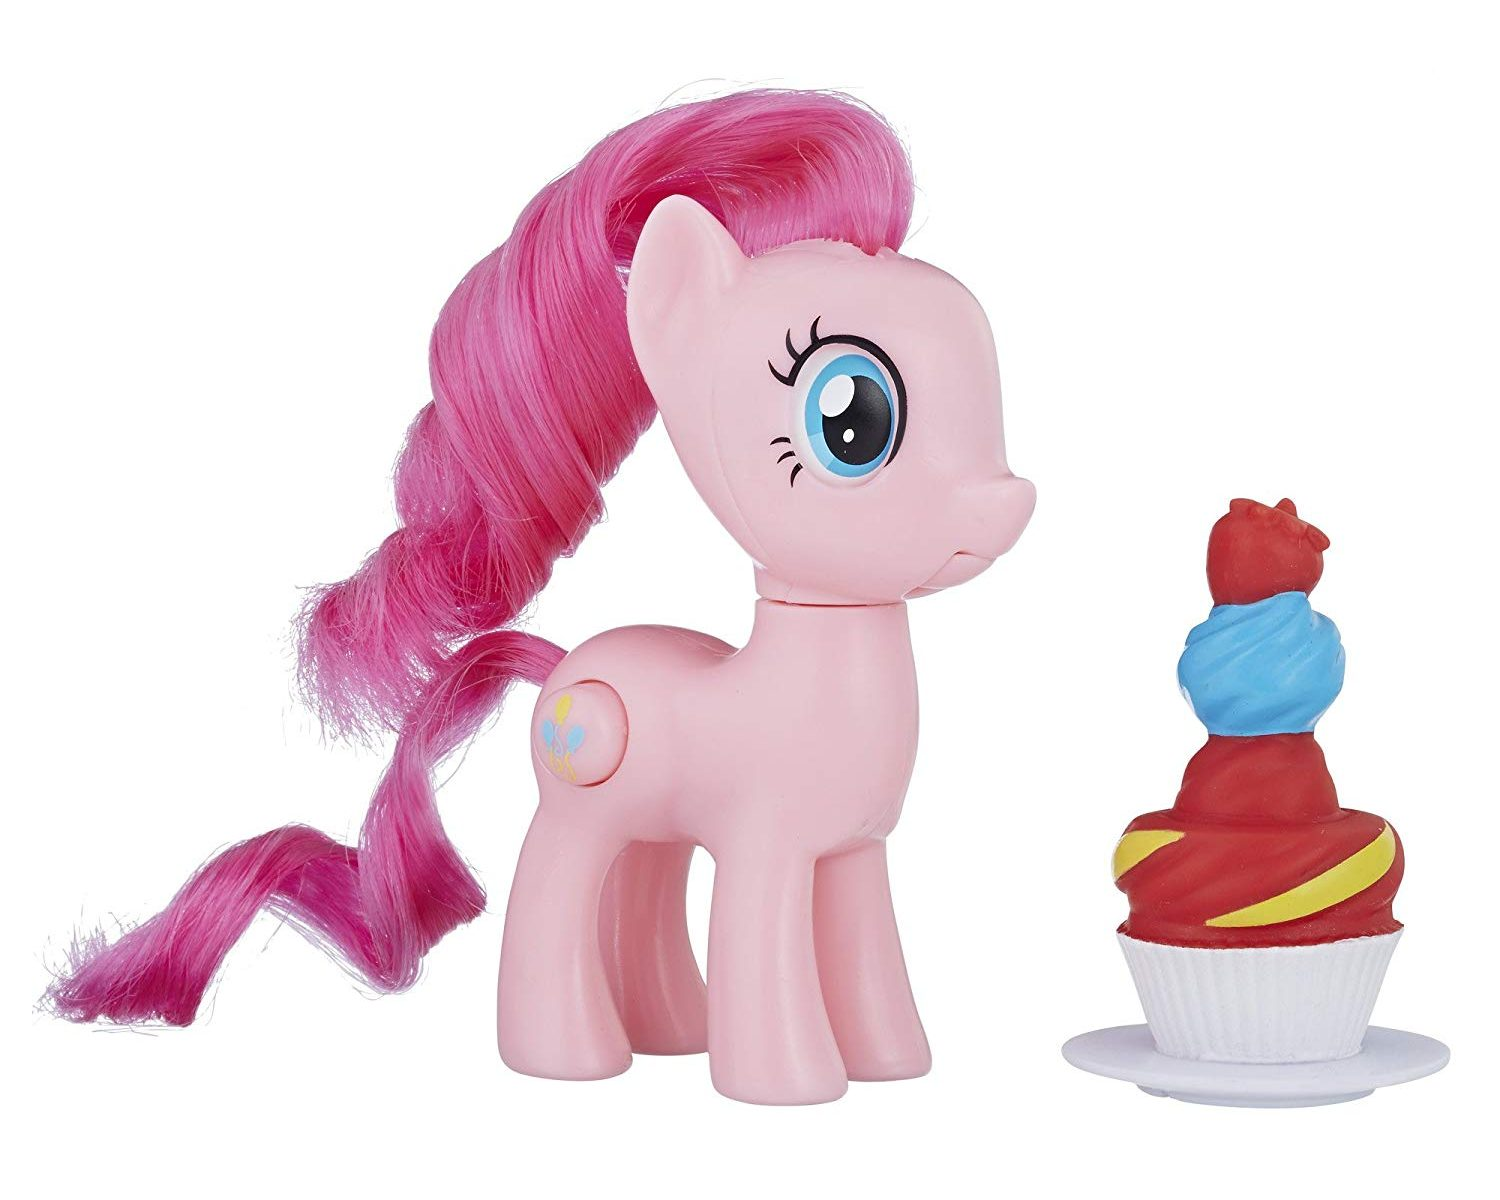 MLP: TM Silly Looks Pinkie Pie Figure Set 2